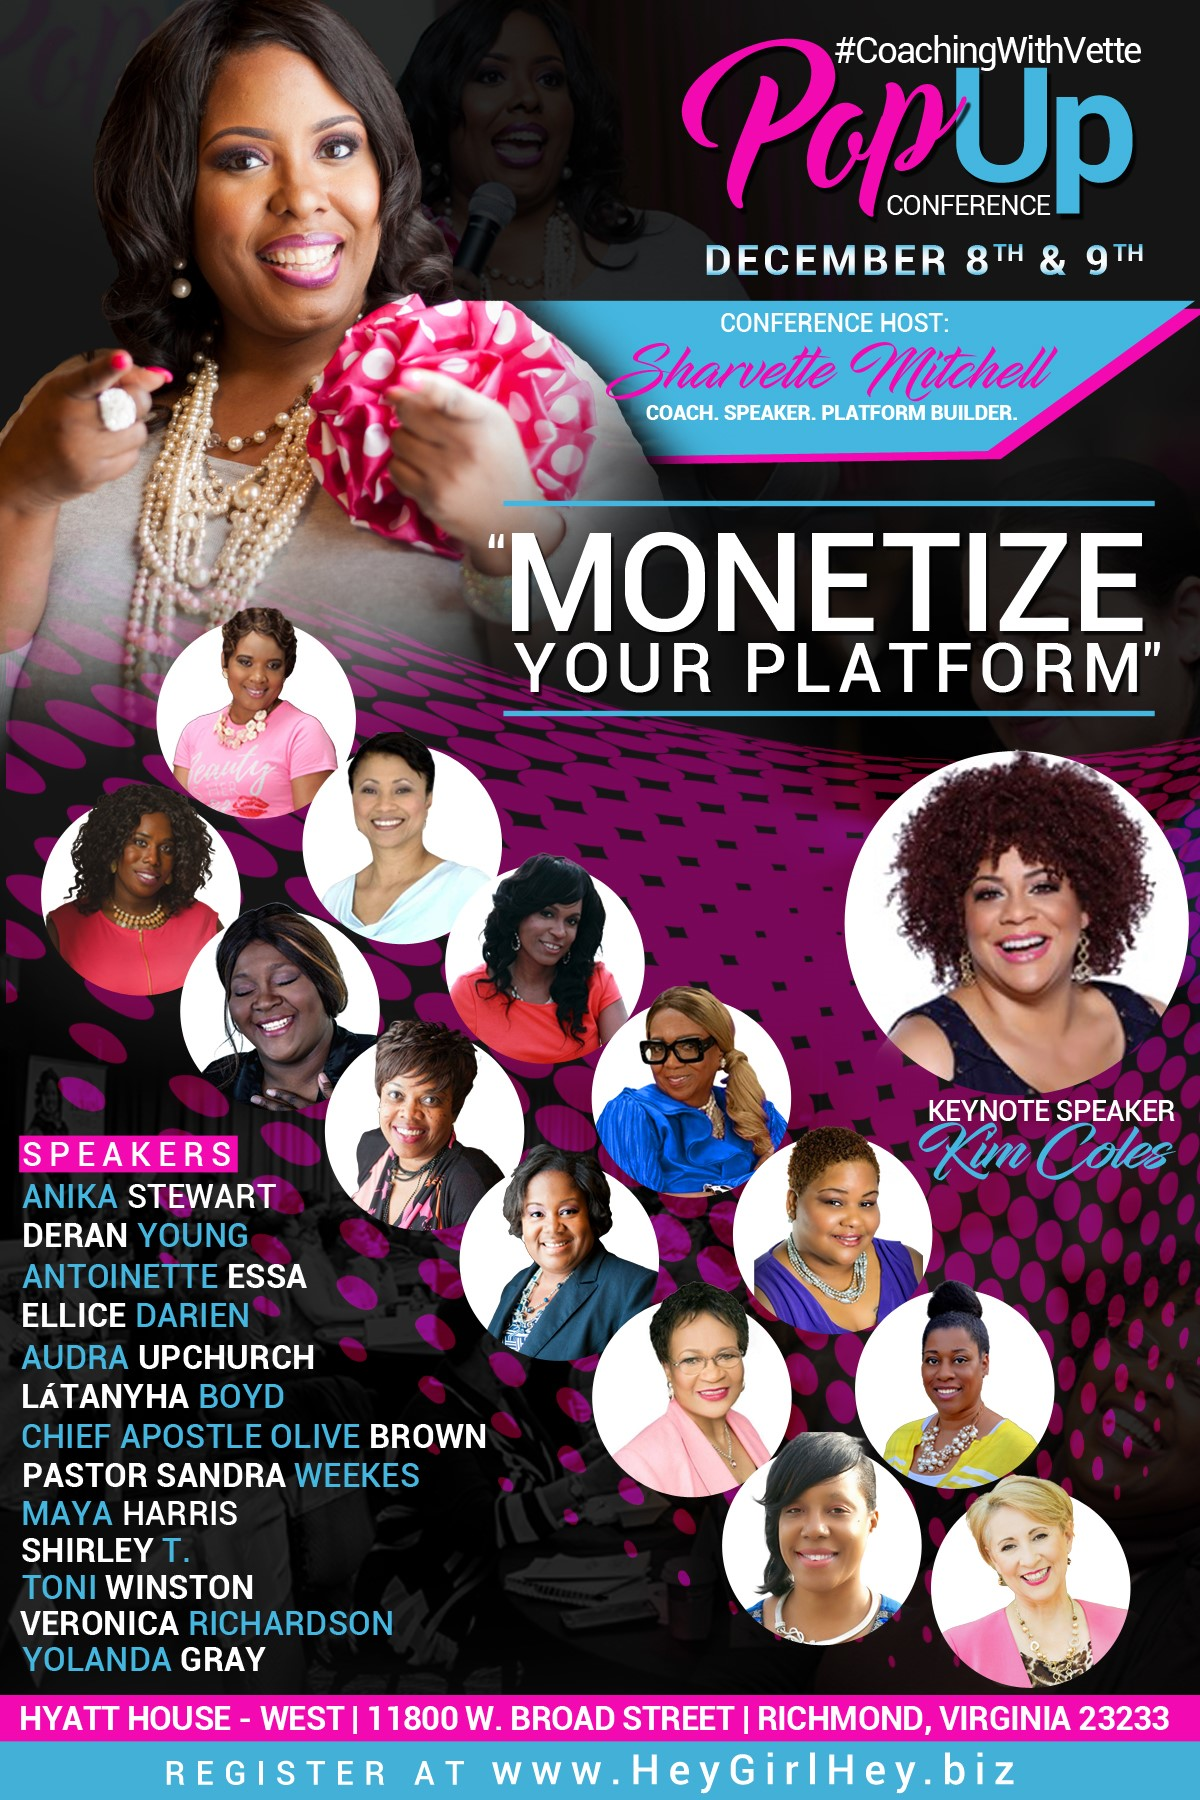 POP UP Conference hosted by Sharvette Mitchell